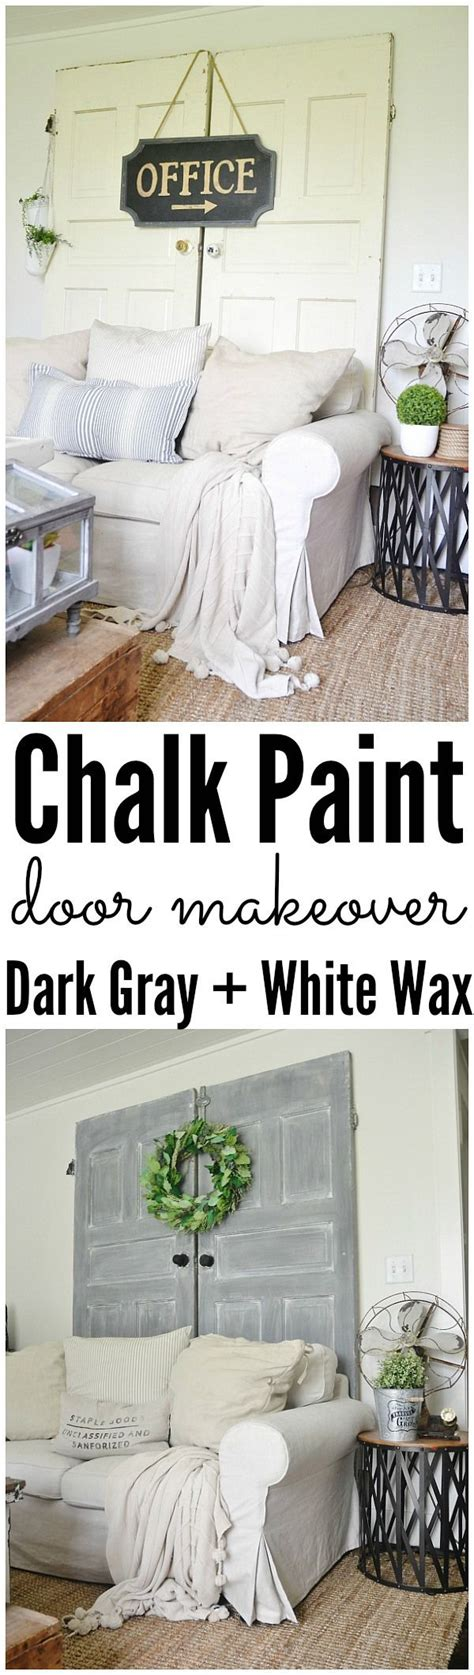 diy chalk paint lime diy crafts ideas chalk paint door makeover new to